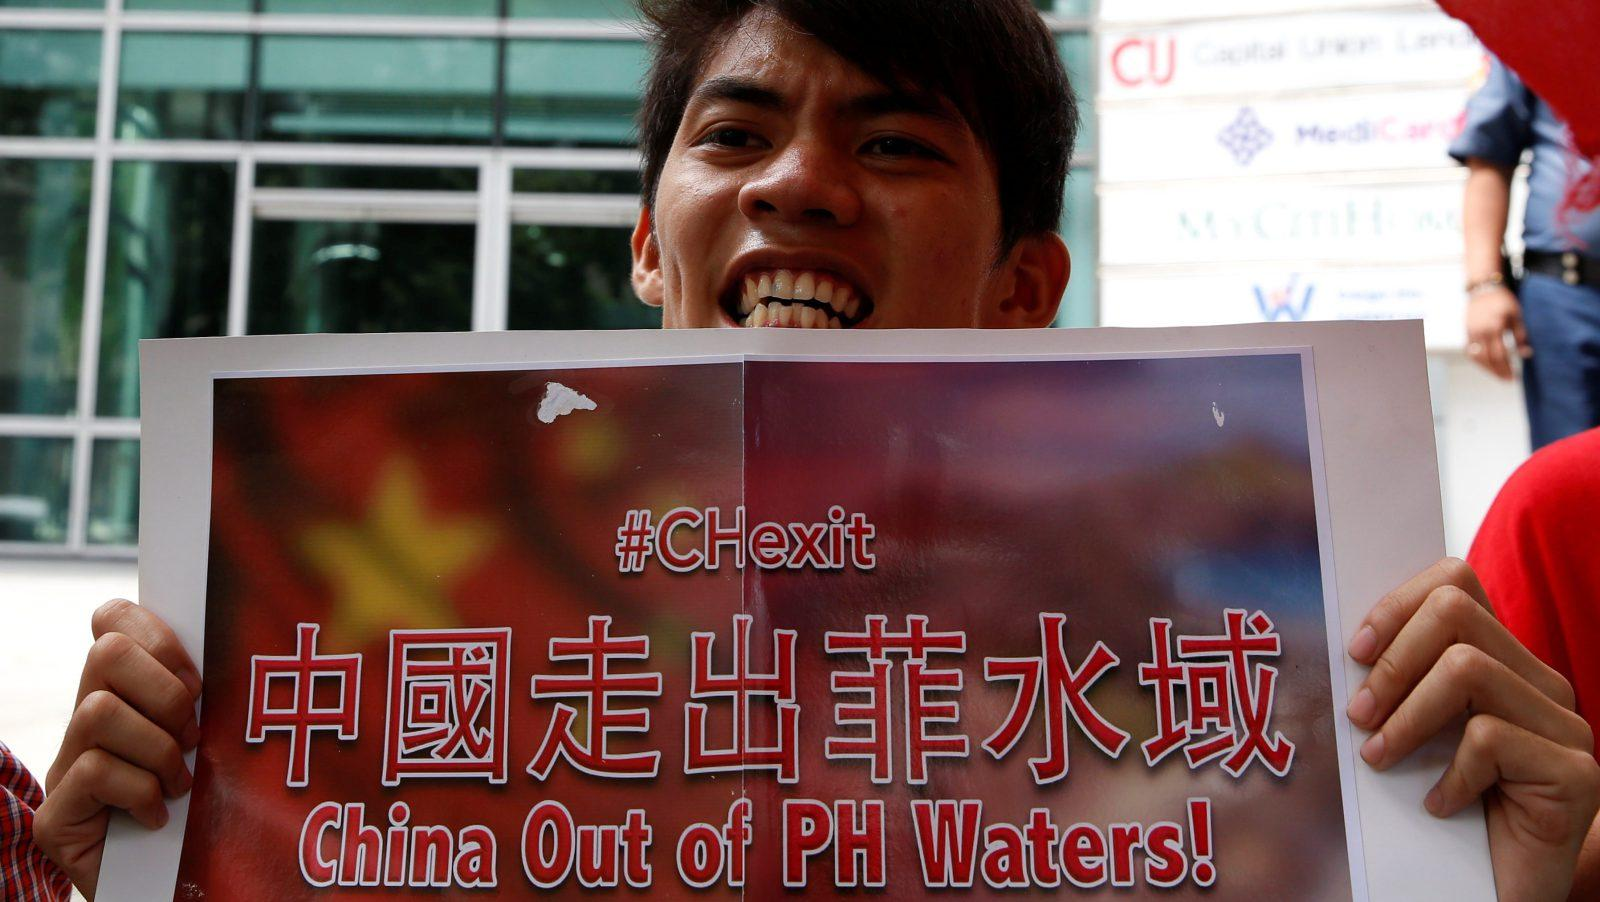 A Vietnamese man joins forces with protesters in the Philippines against Chinese holdings of the South China Sea.